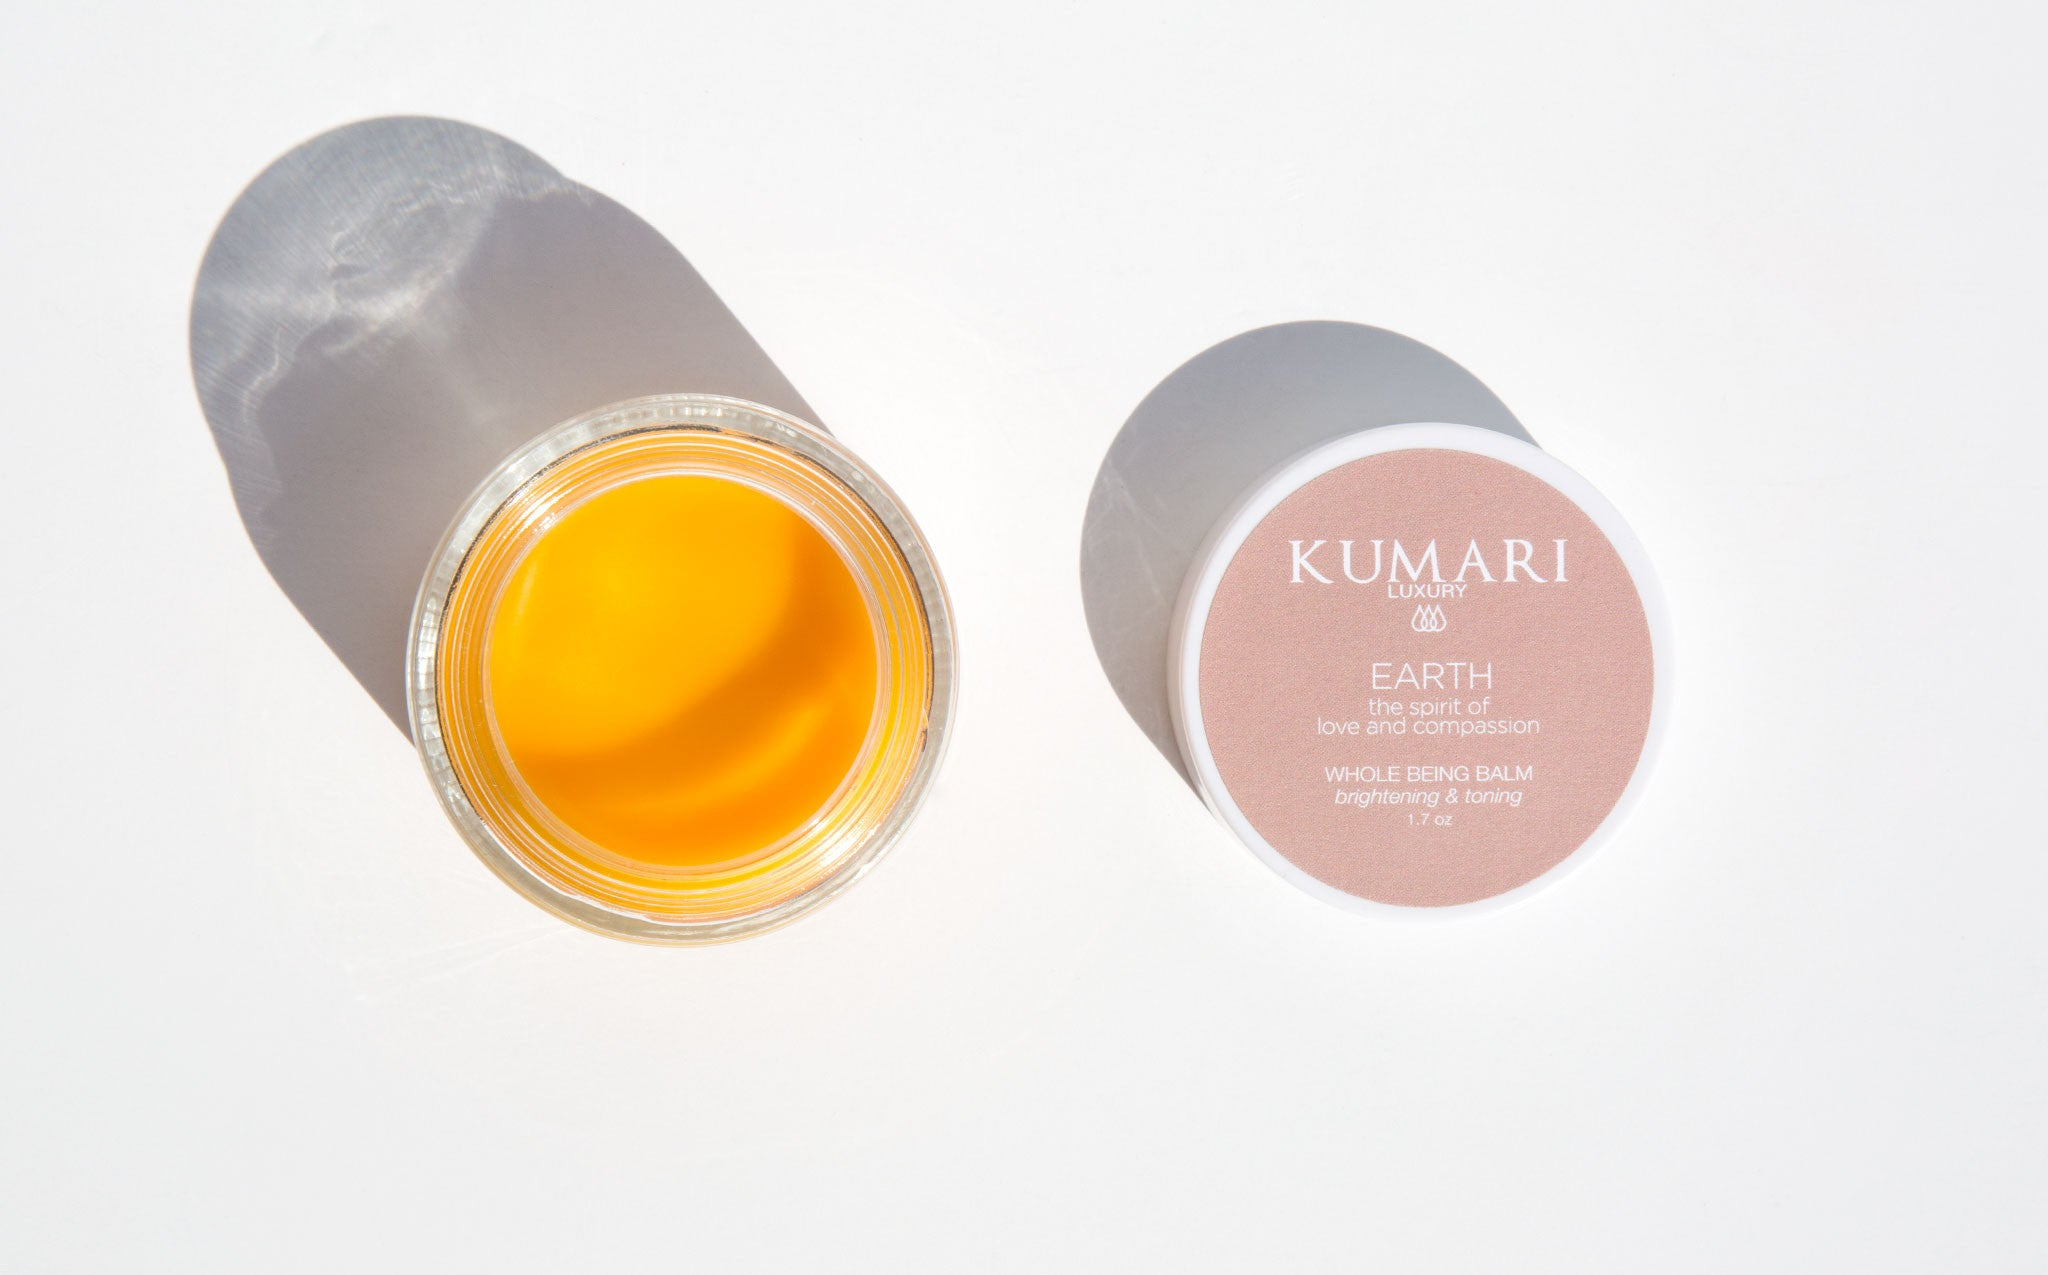 Kumari Luxury Earth Whole Being balm